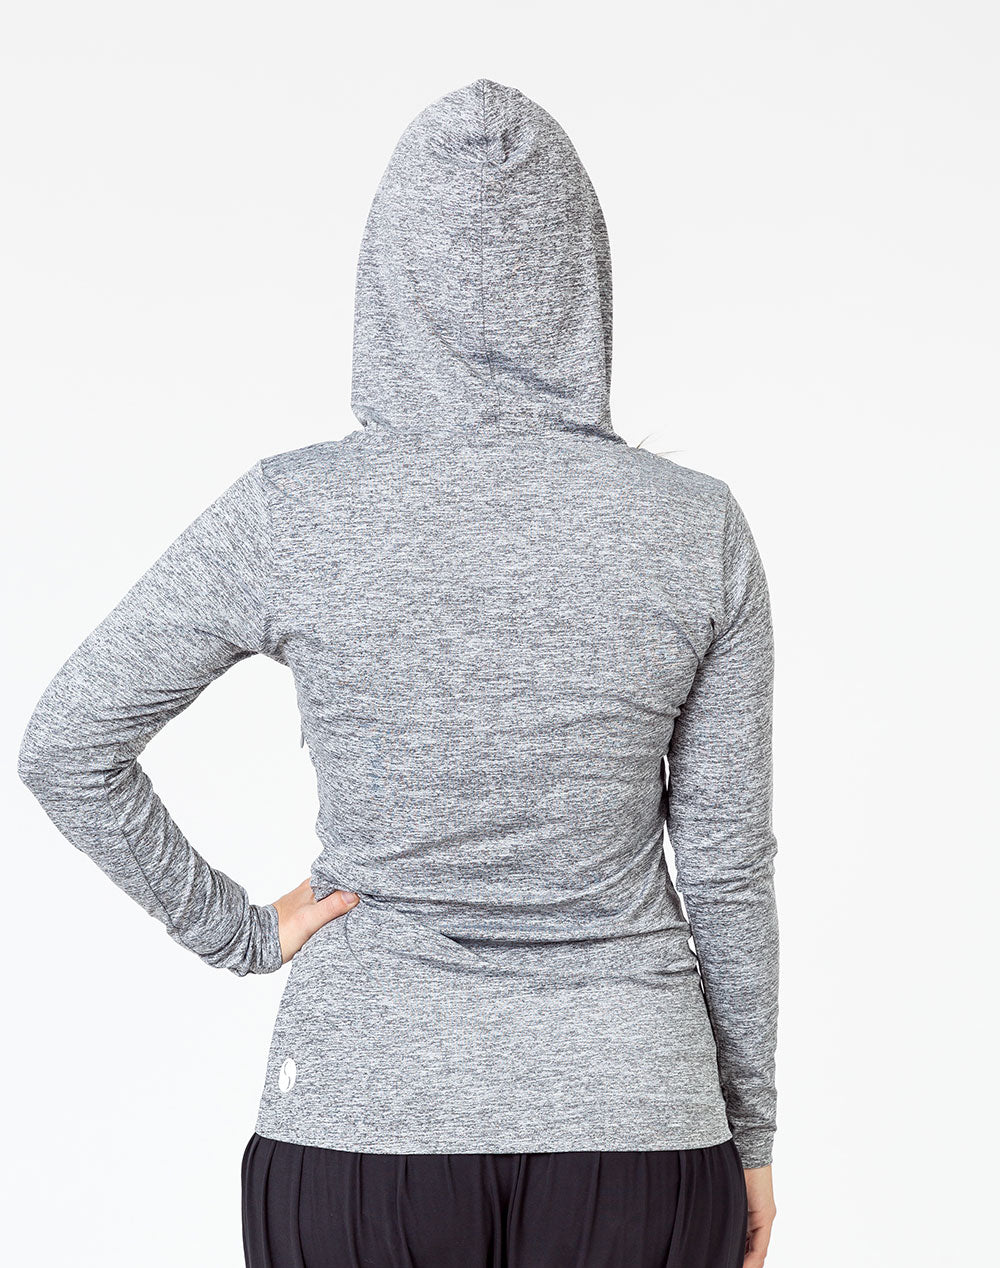 back view of a pregnant mum wearing a grey breastfeeding hoodie with the hood up